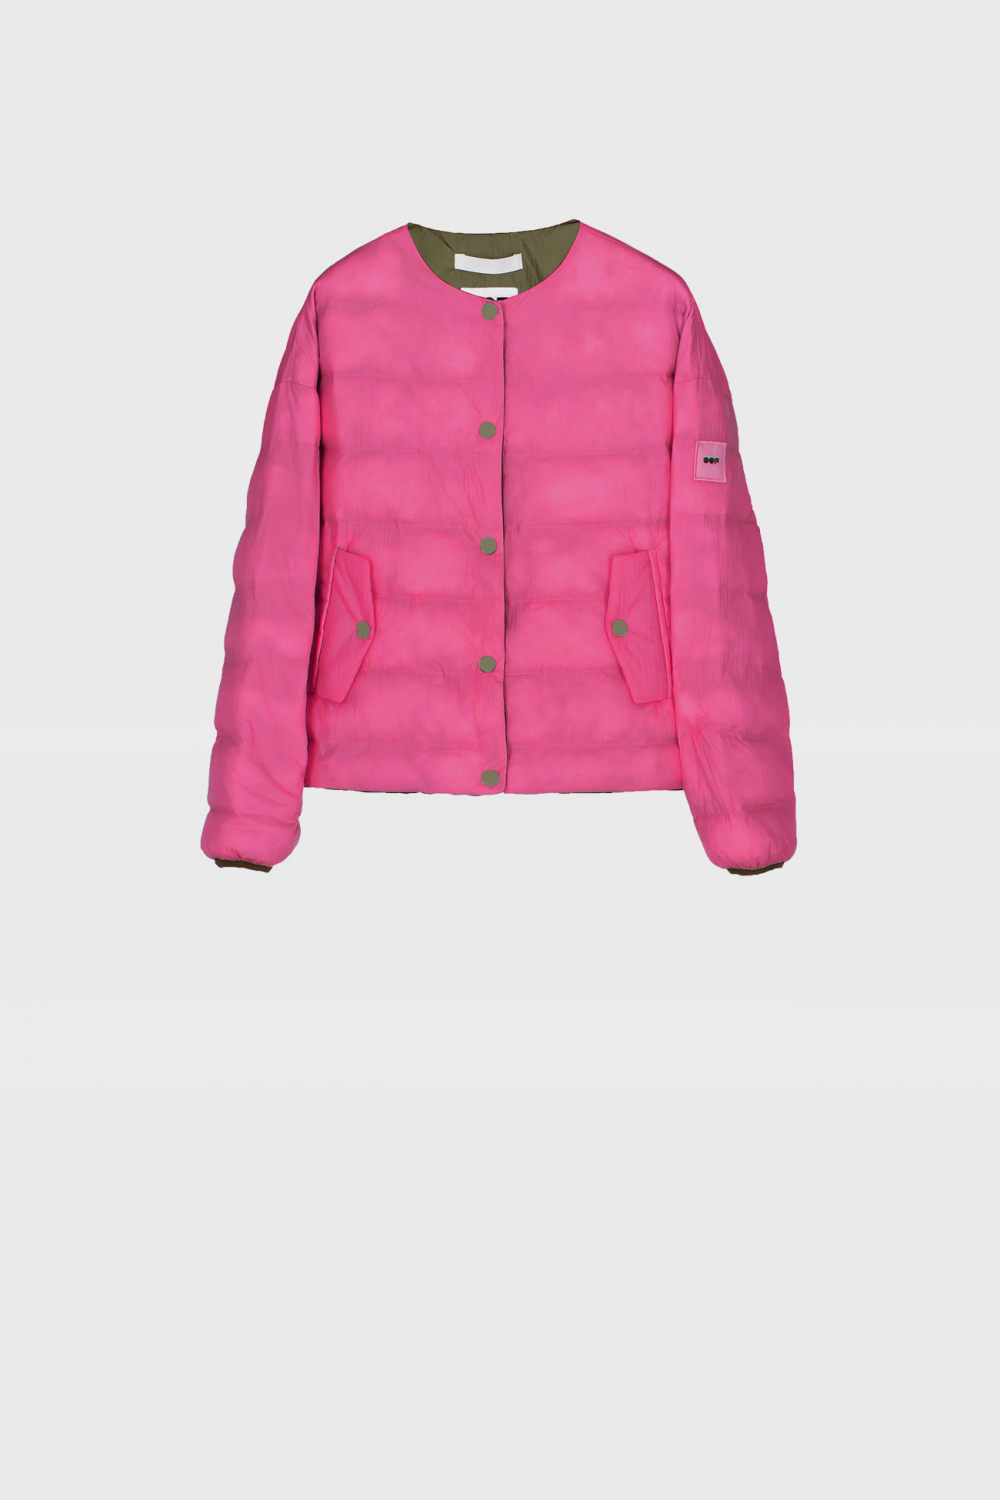 Short padded and reversible jacket in green and pink